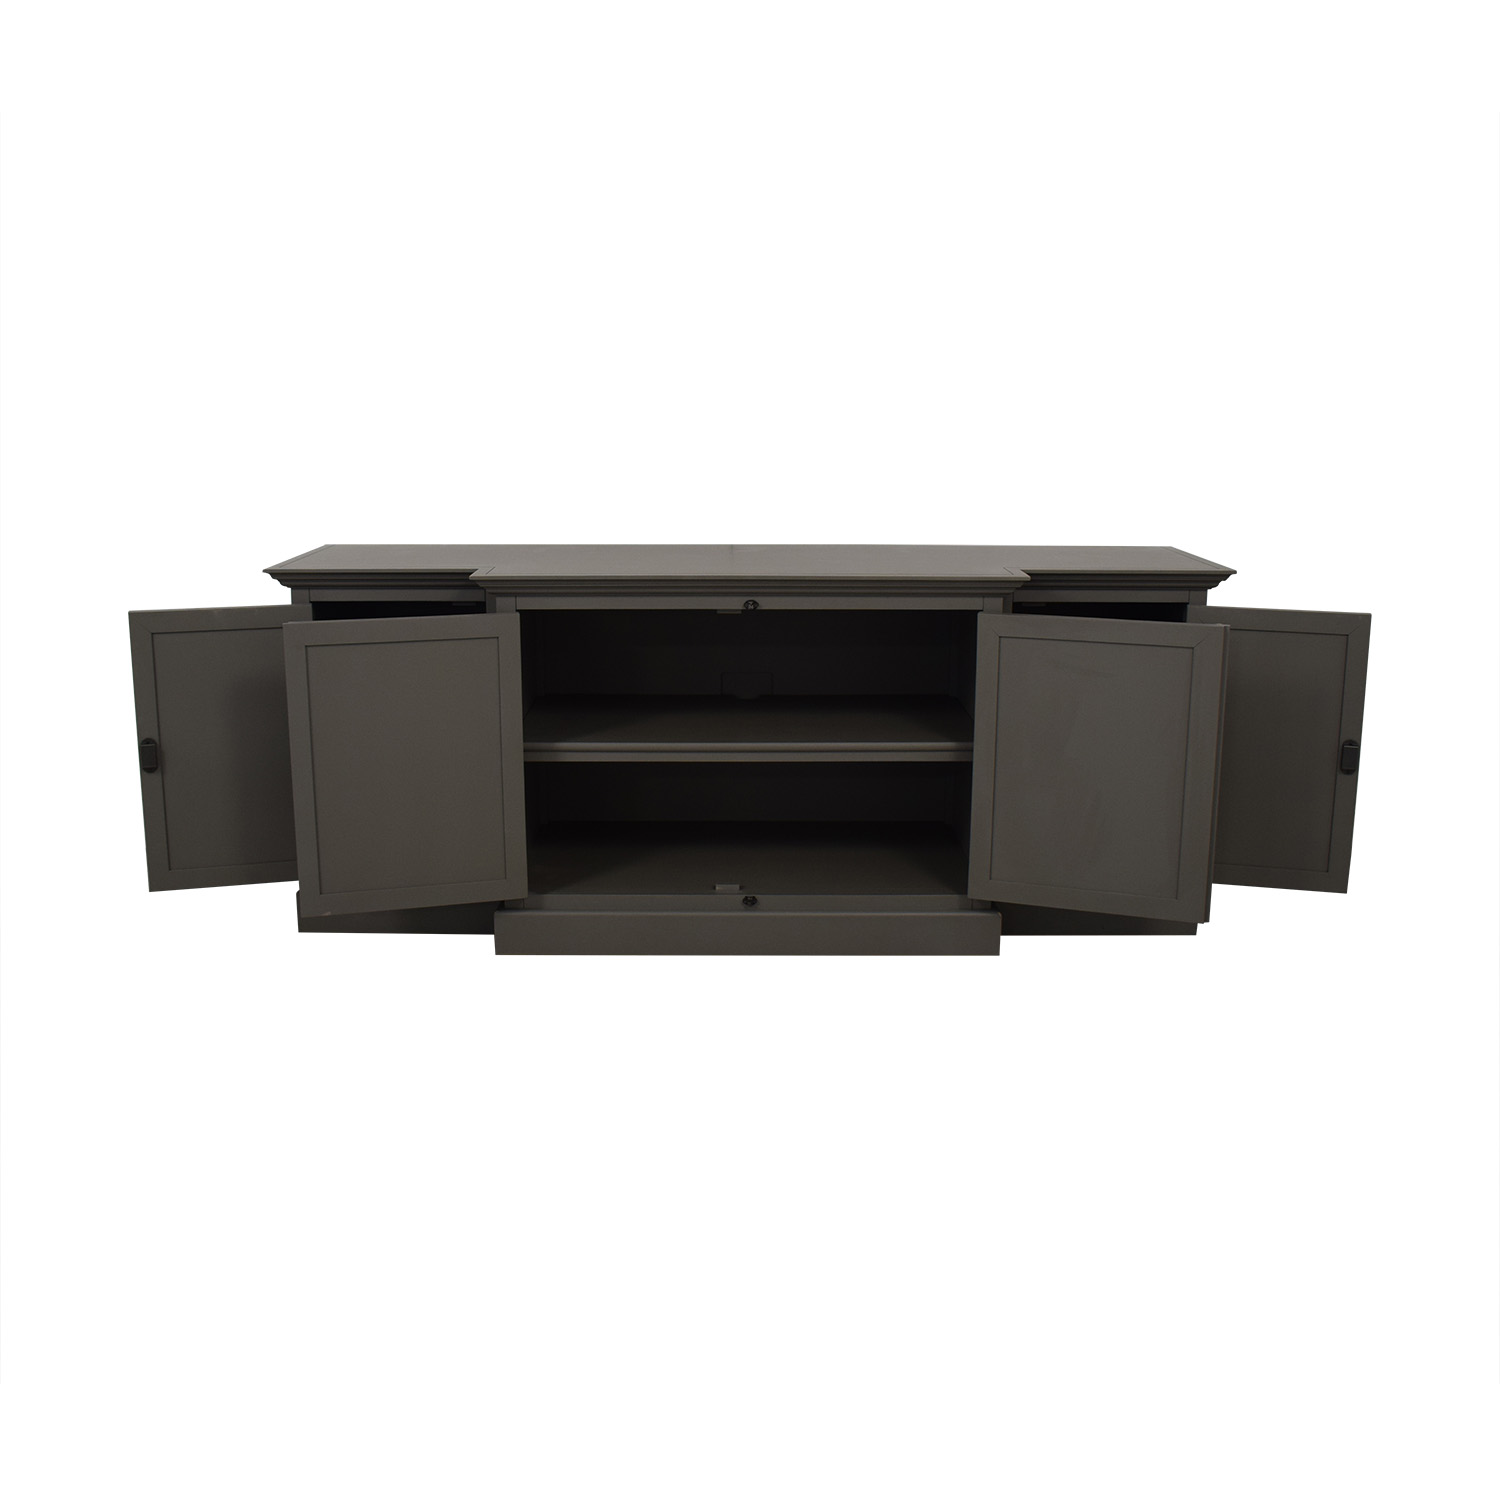 Restoration Hardware Restoration Hardware Media Console price